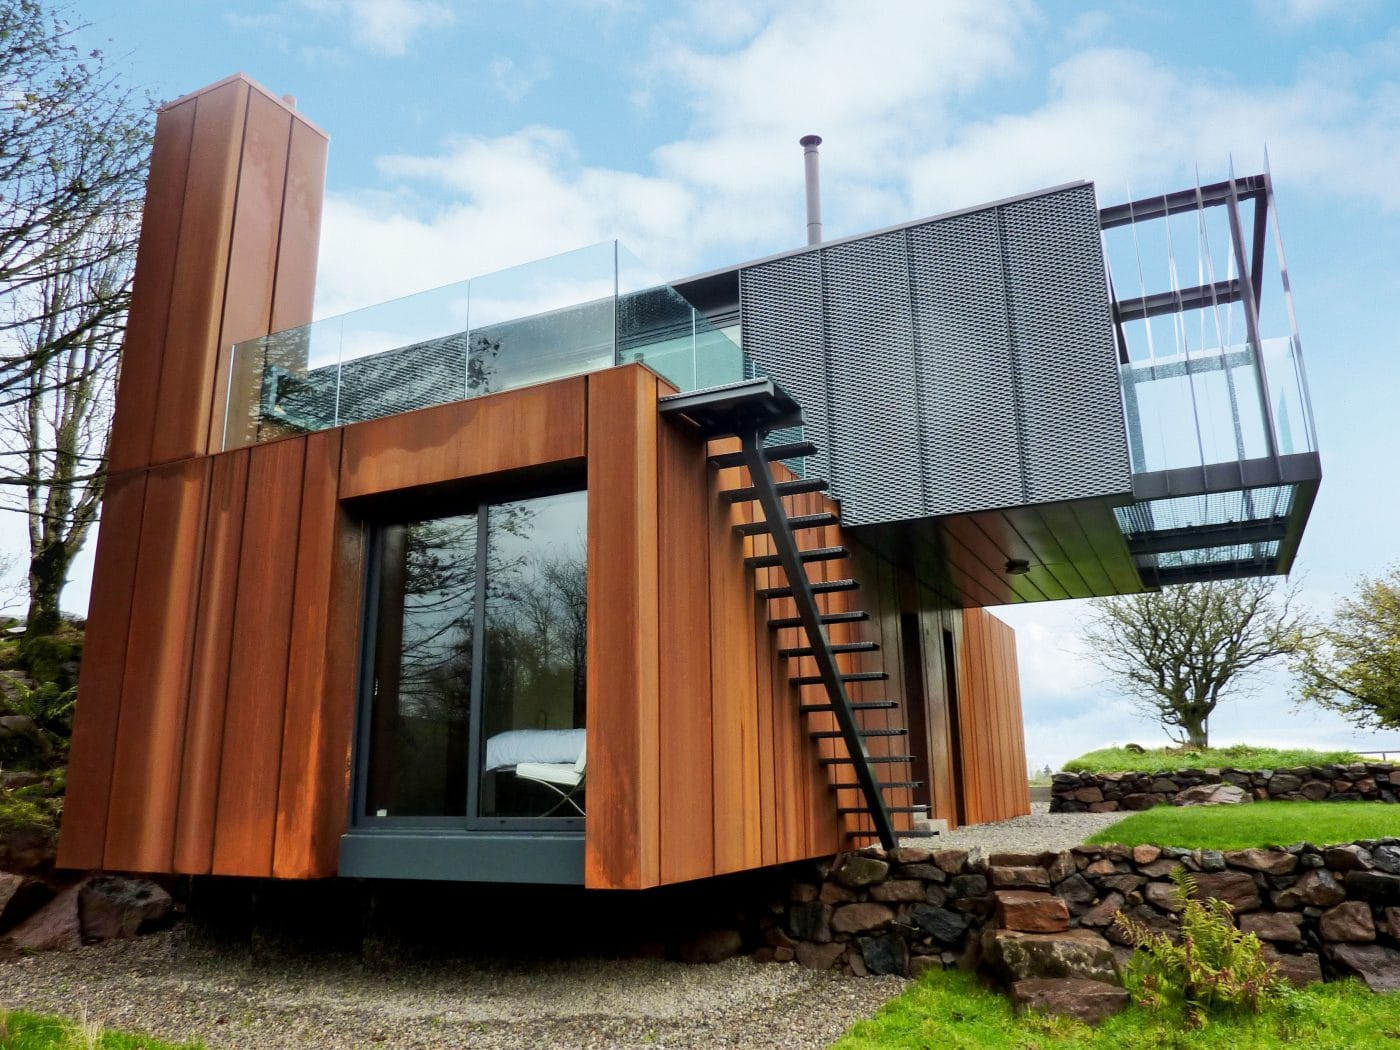 Grand designs shipping container home by patrick bradley for Design shipping container home online